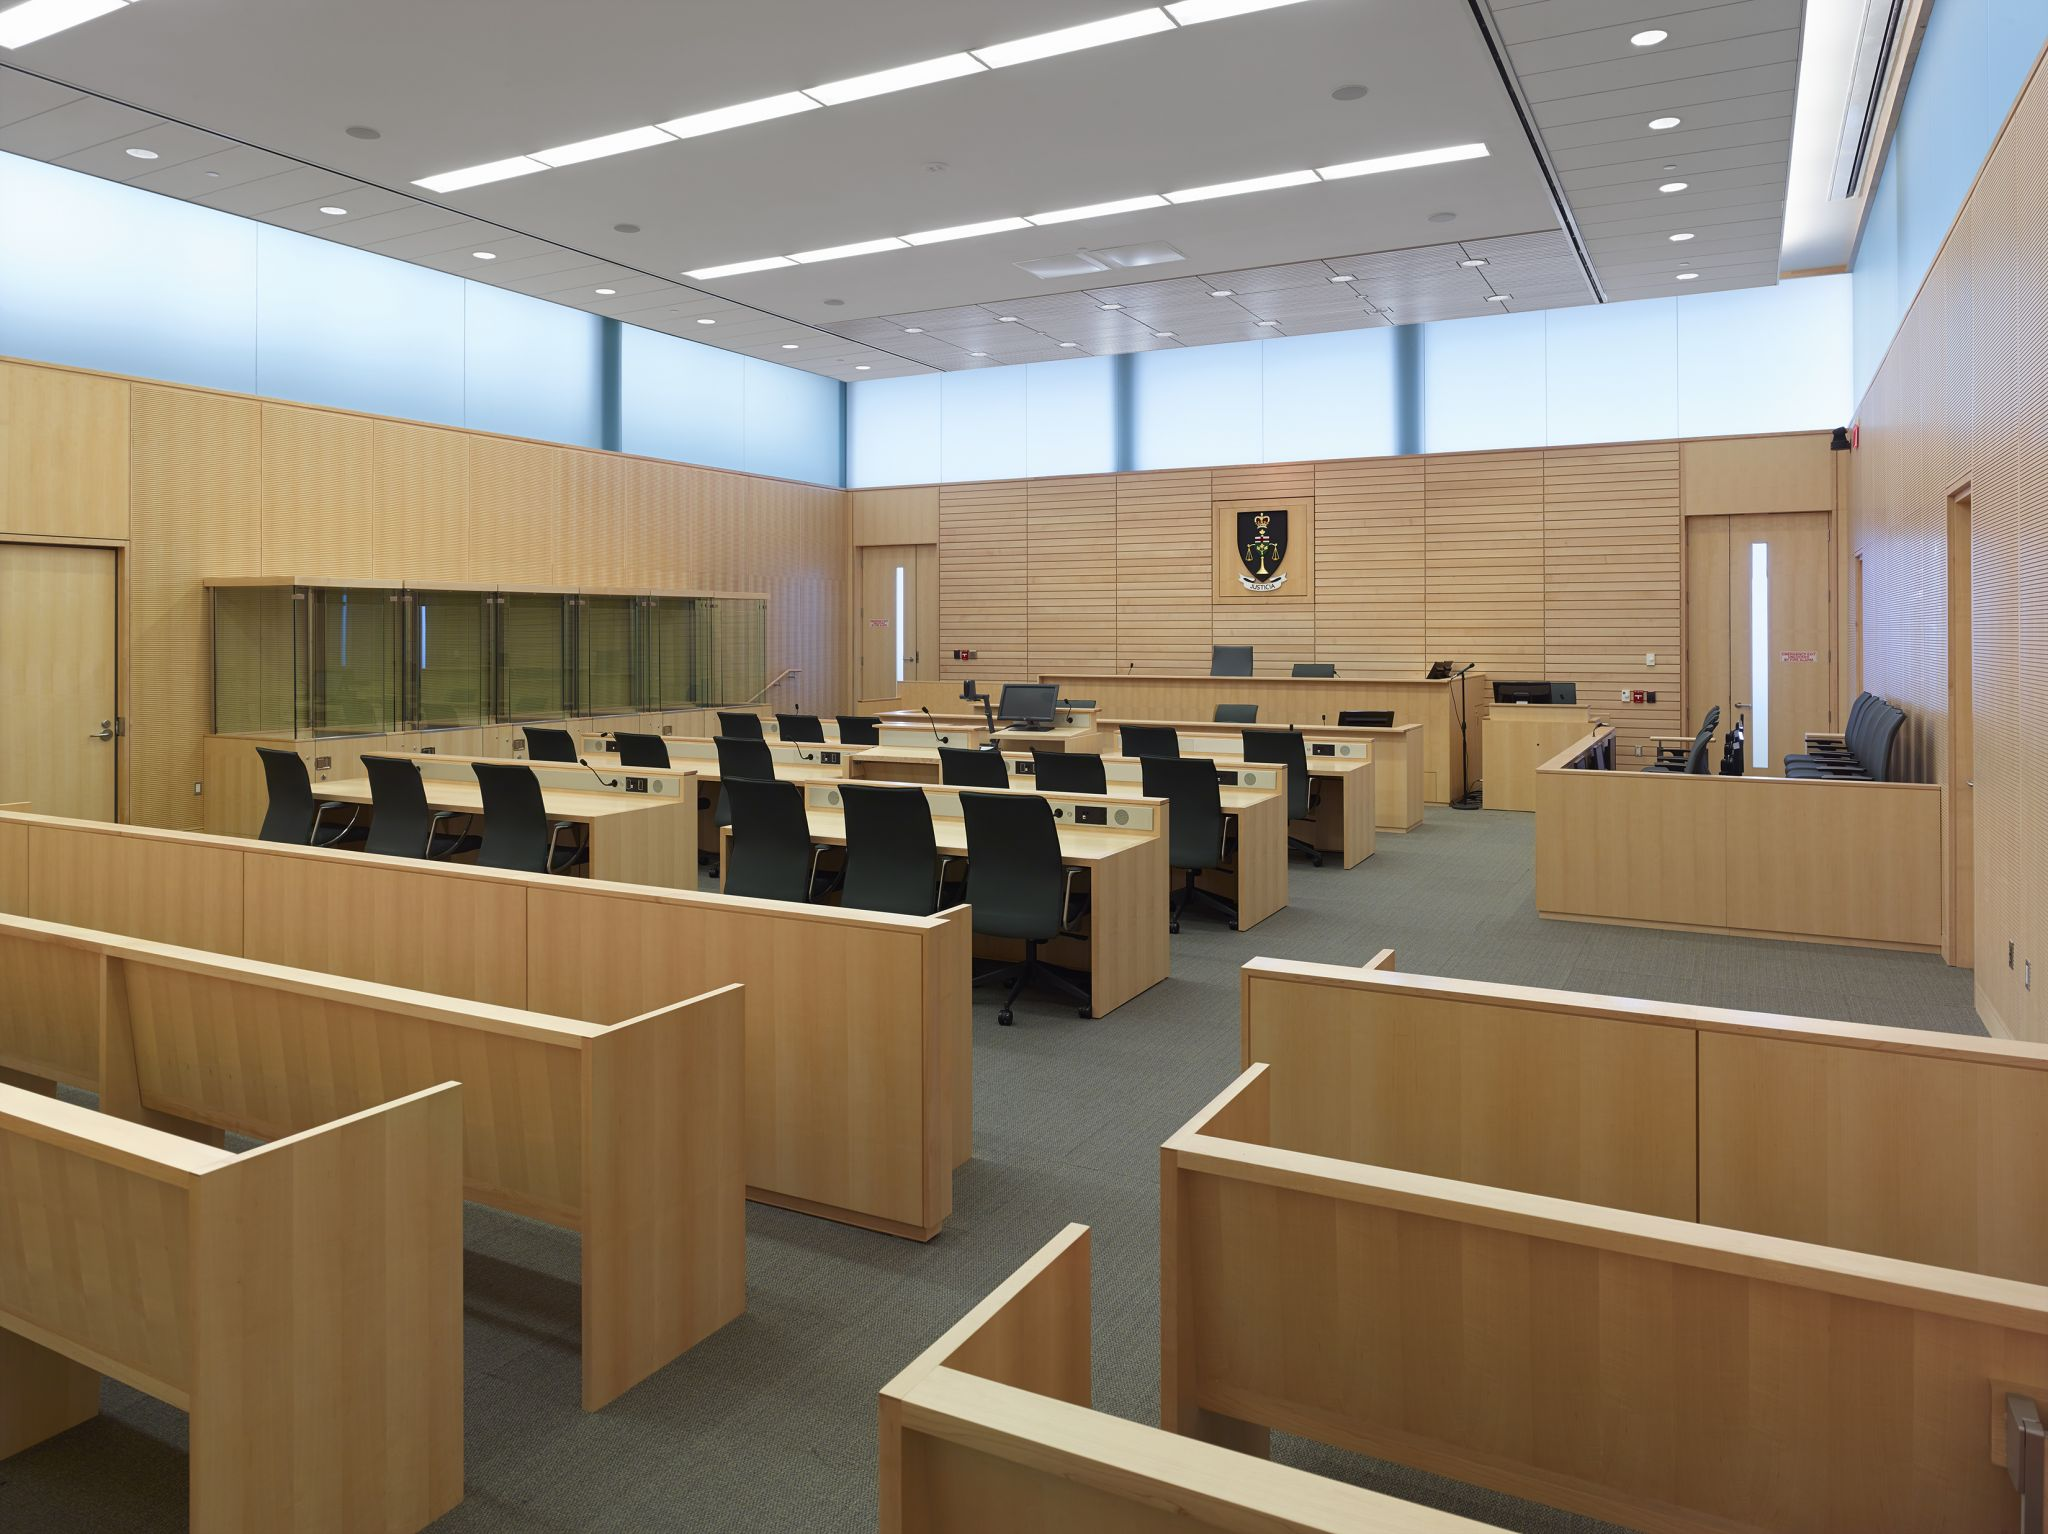 This is the interior view of the Multiple Accused High Security (MAHS) courtroom. The acoustical design, developed by Aercoustics and the project team, ensures acoustic audibility without the need for audio/visual enhancement.